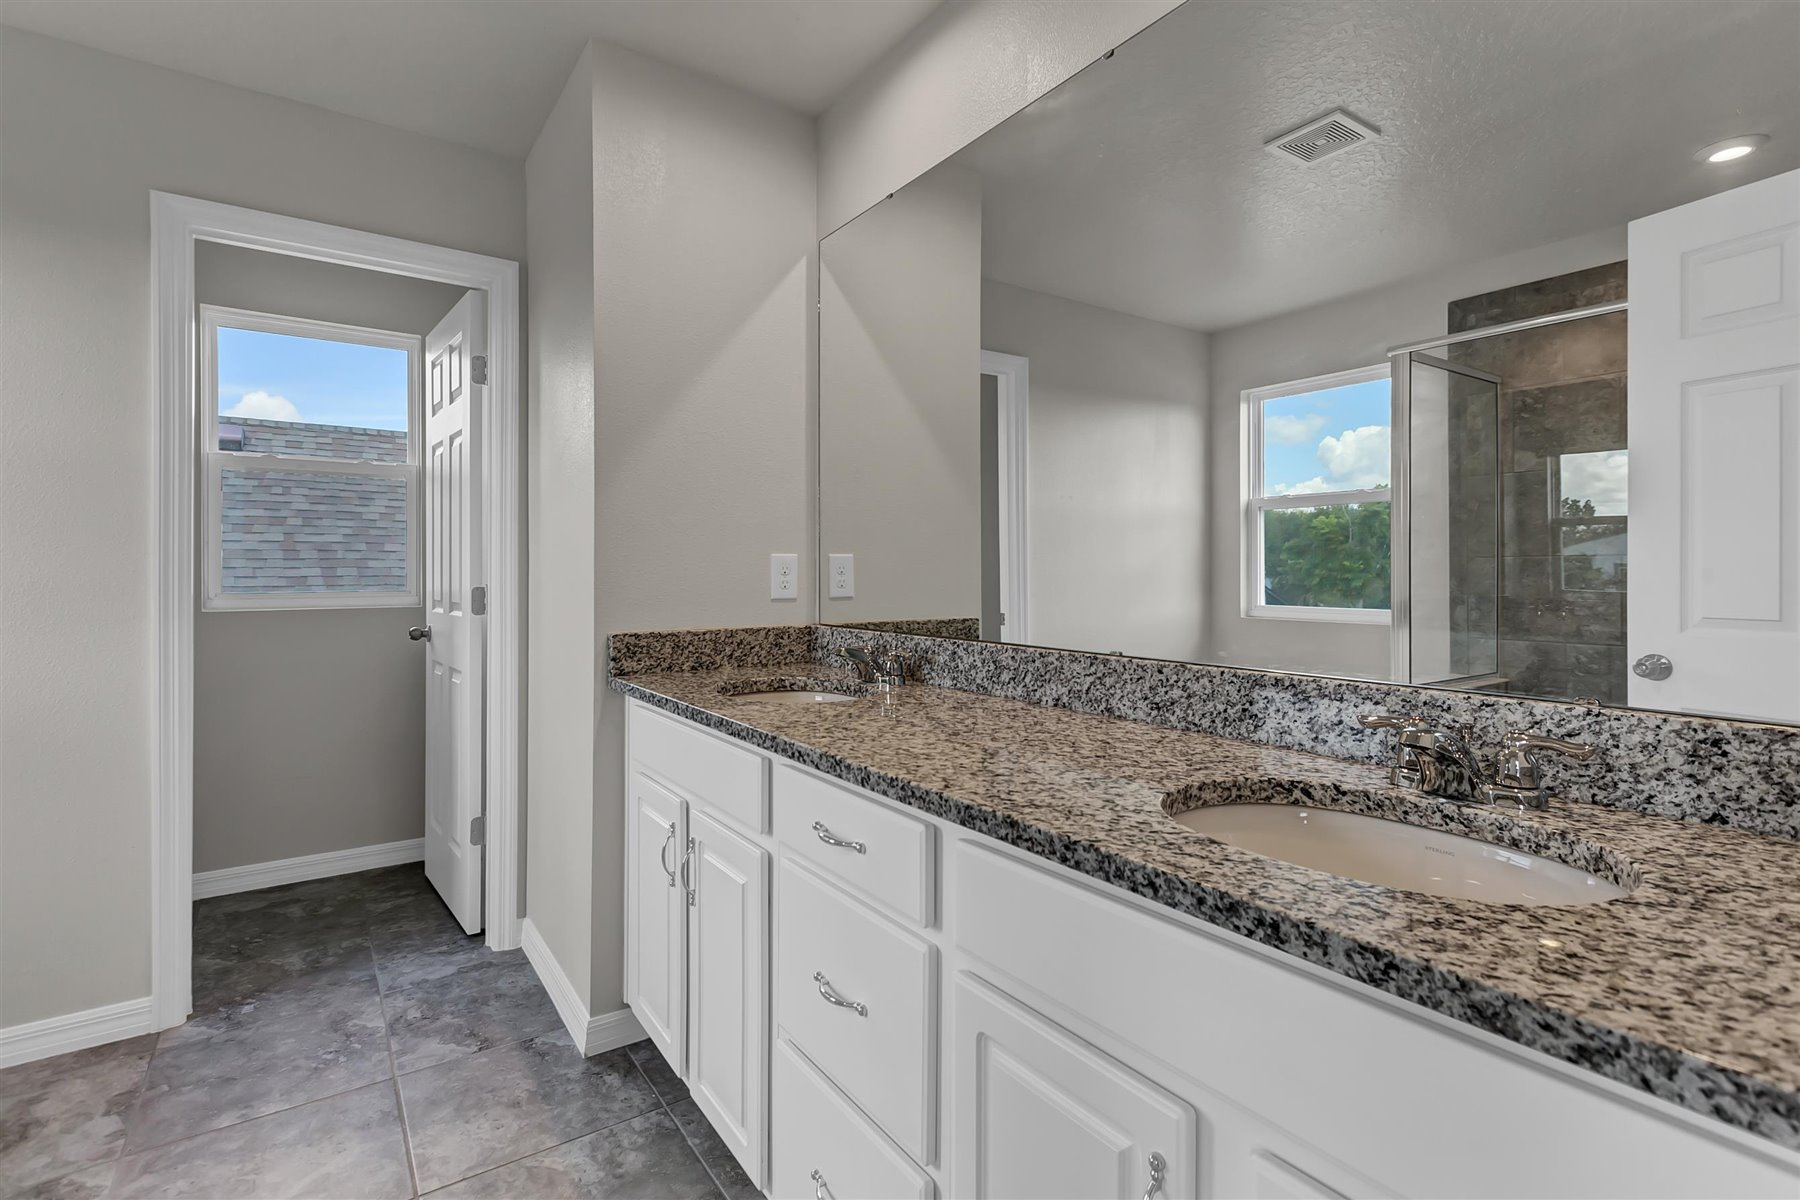 Palmetto Plan Bath at Tapestry in Kissimmee Florida by Mattamy Homes